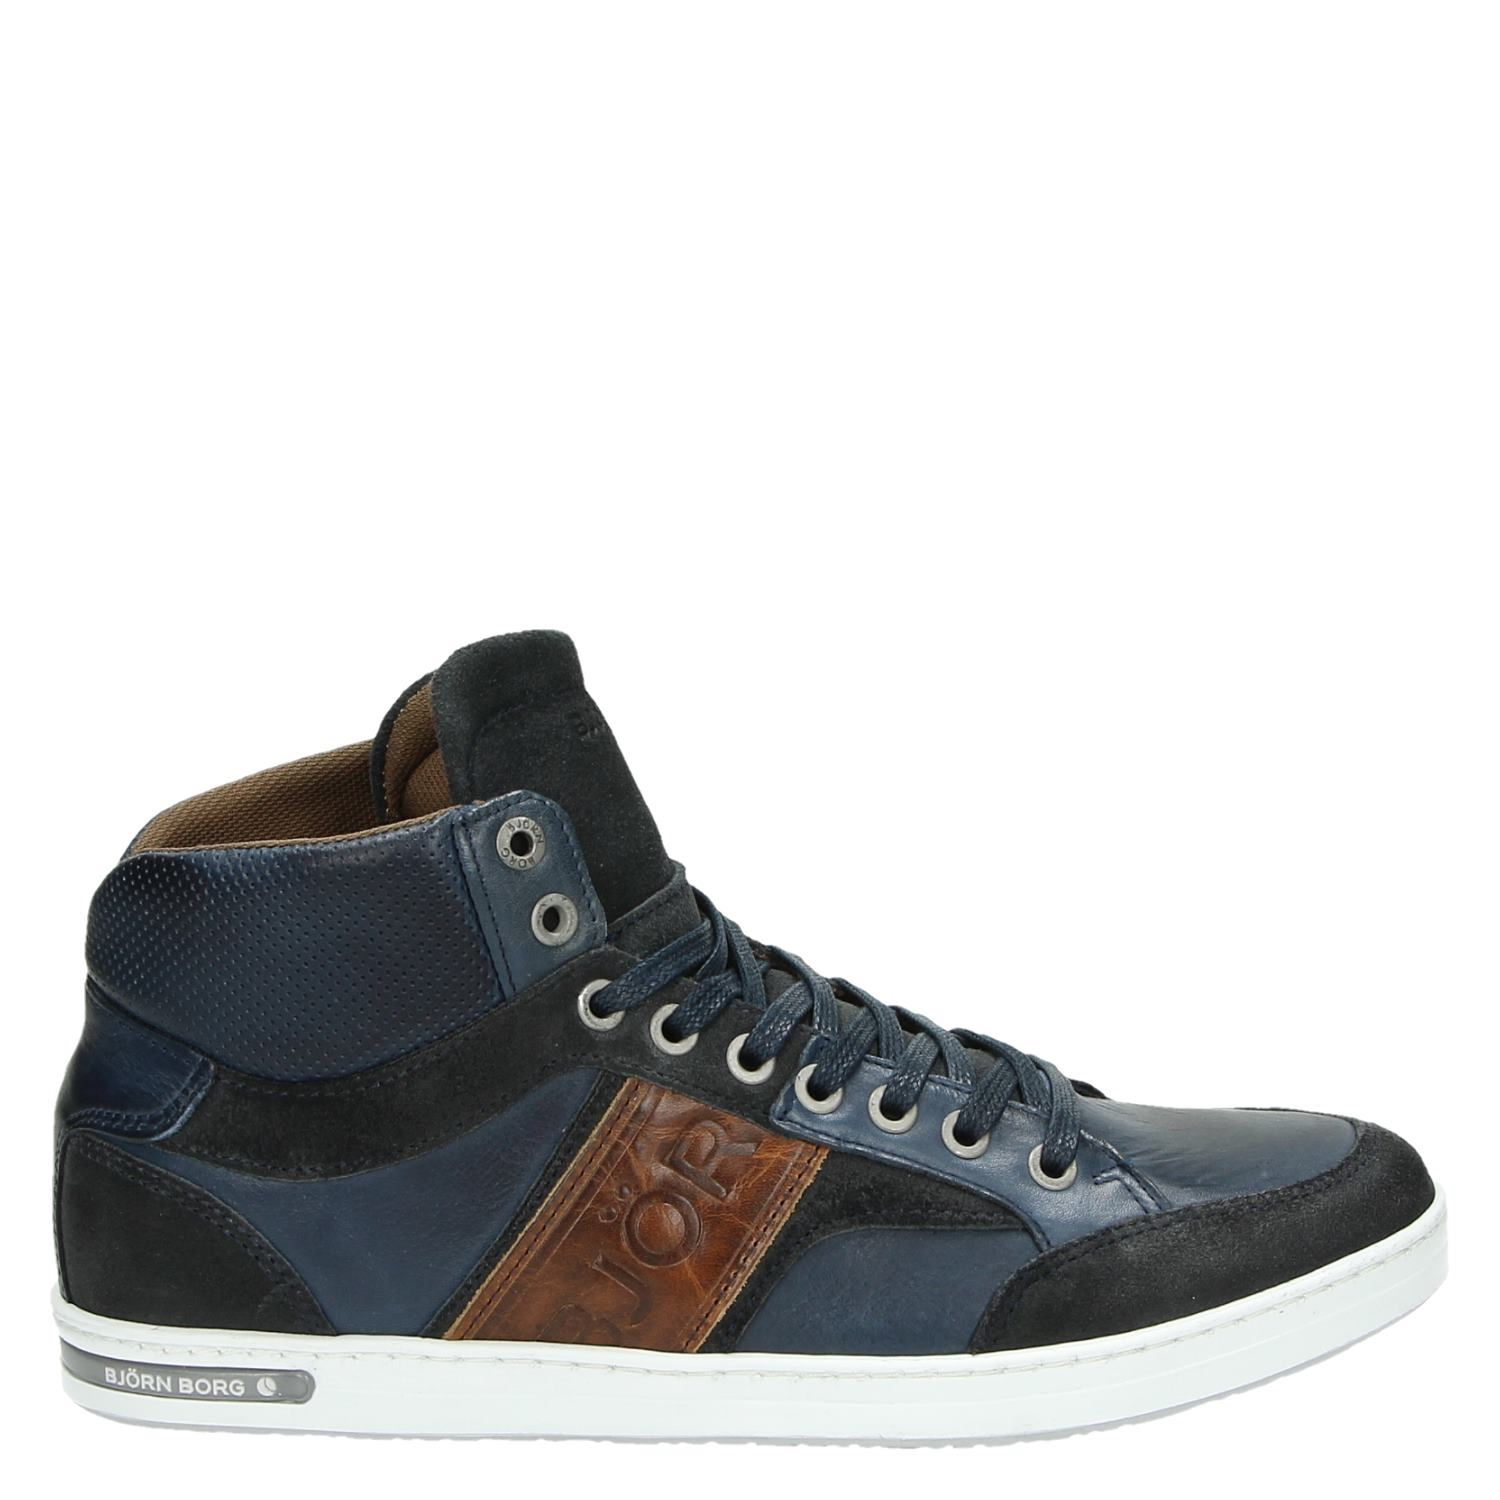 Hommes Chaussures Borg Bjorn kuCpD